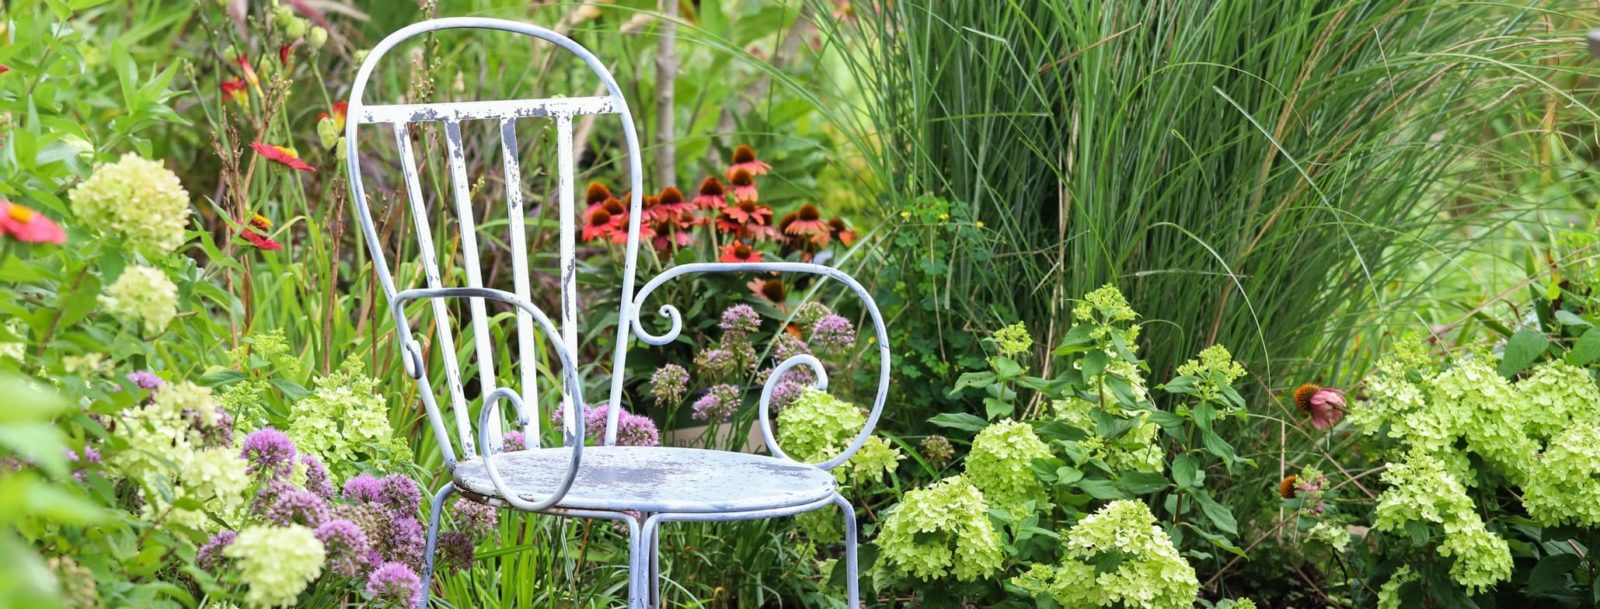 a chair in the corner of a secluded garden